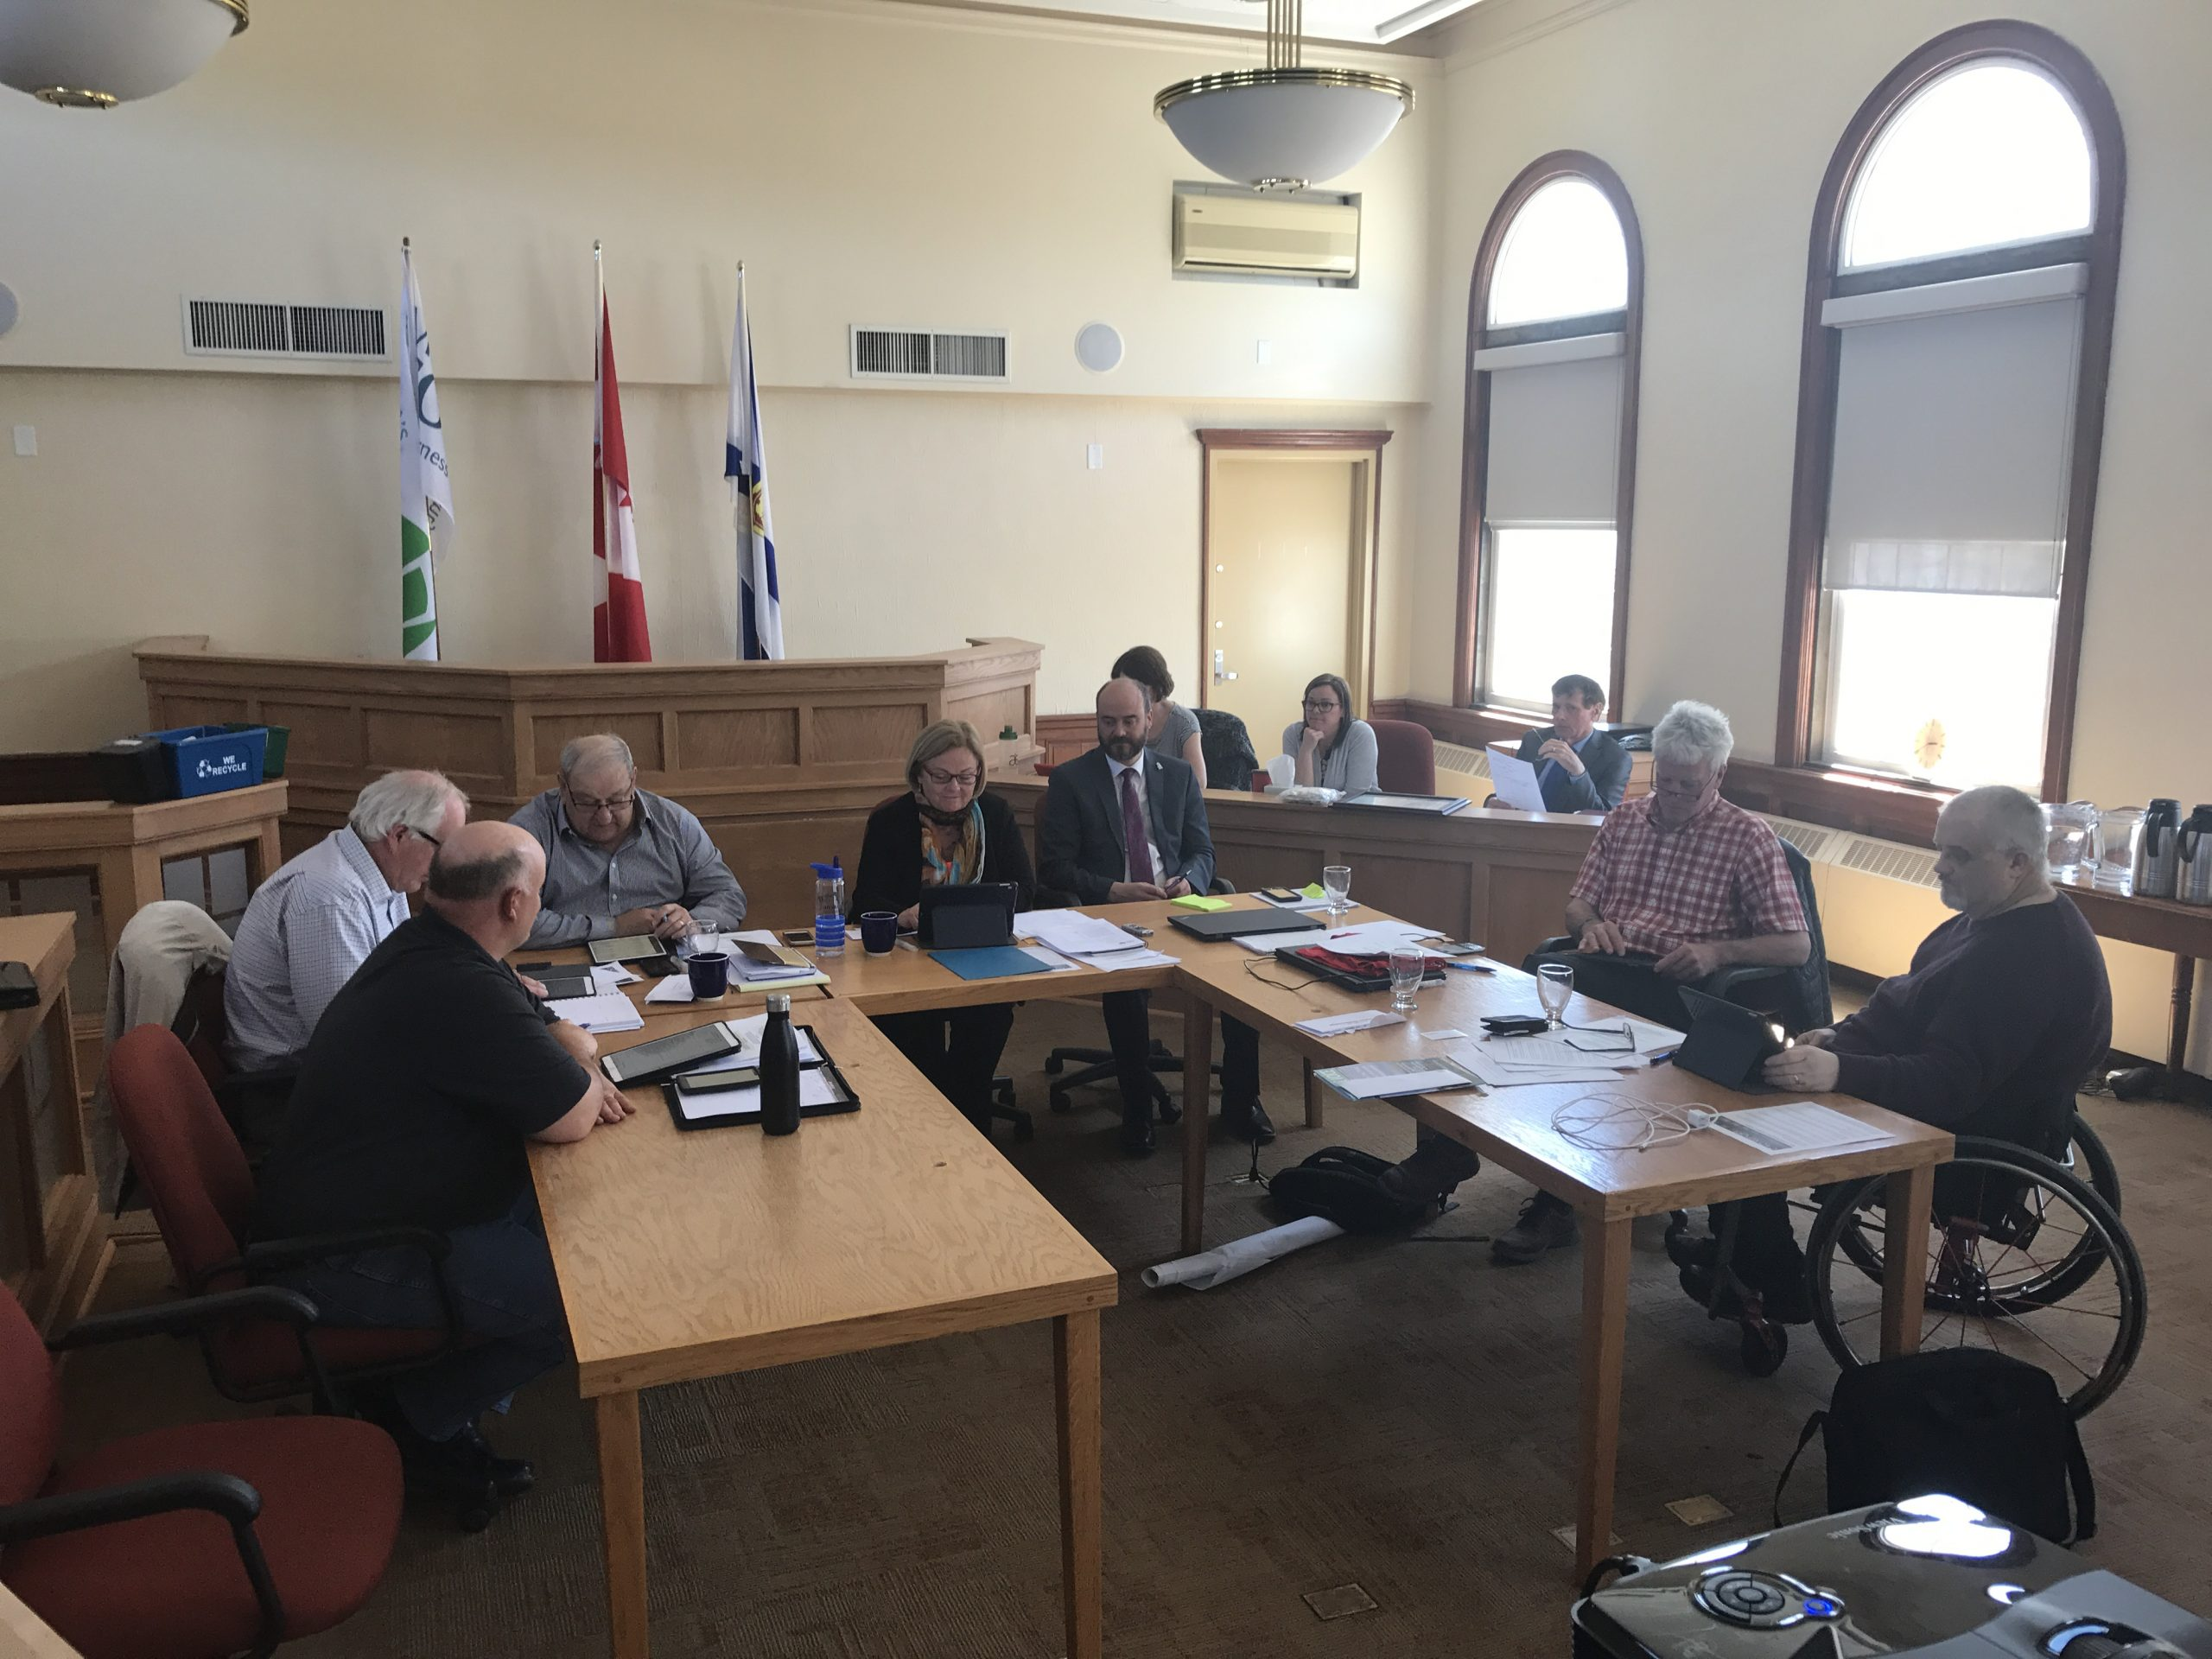 Warden says accessibility committee work well underway